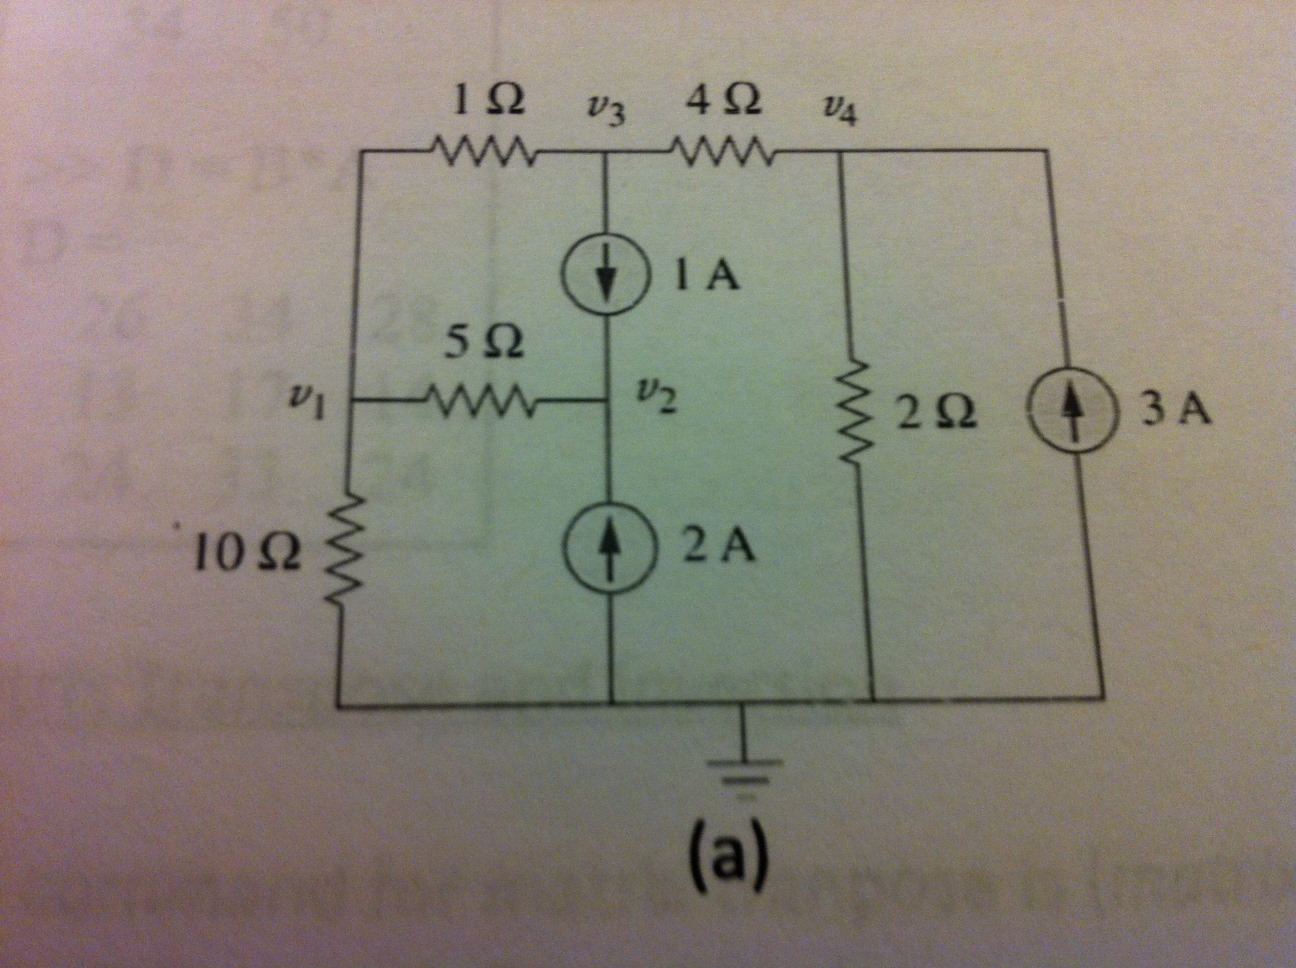 Use nodal analysis for circuit (a)